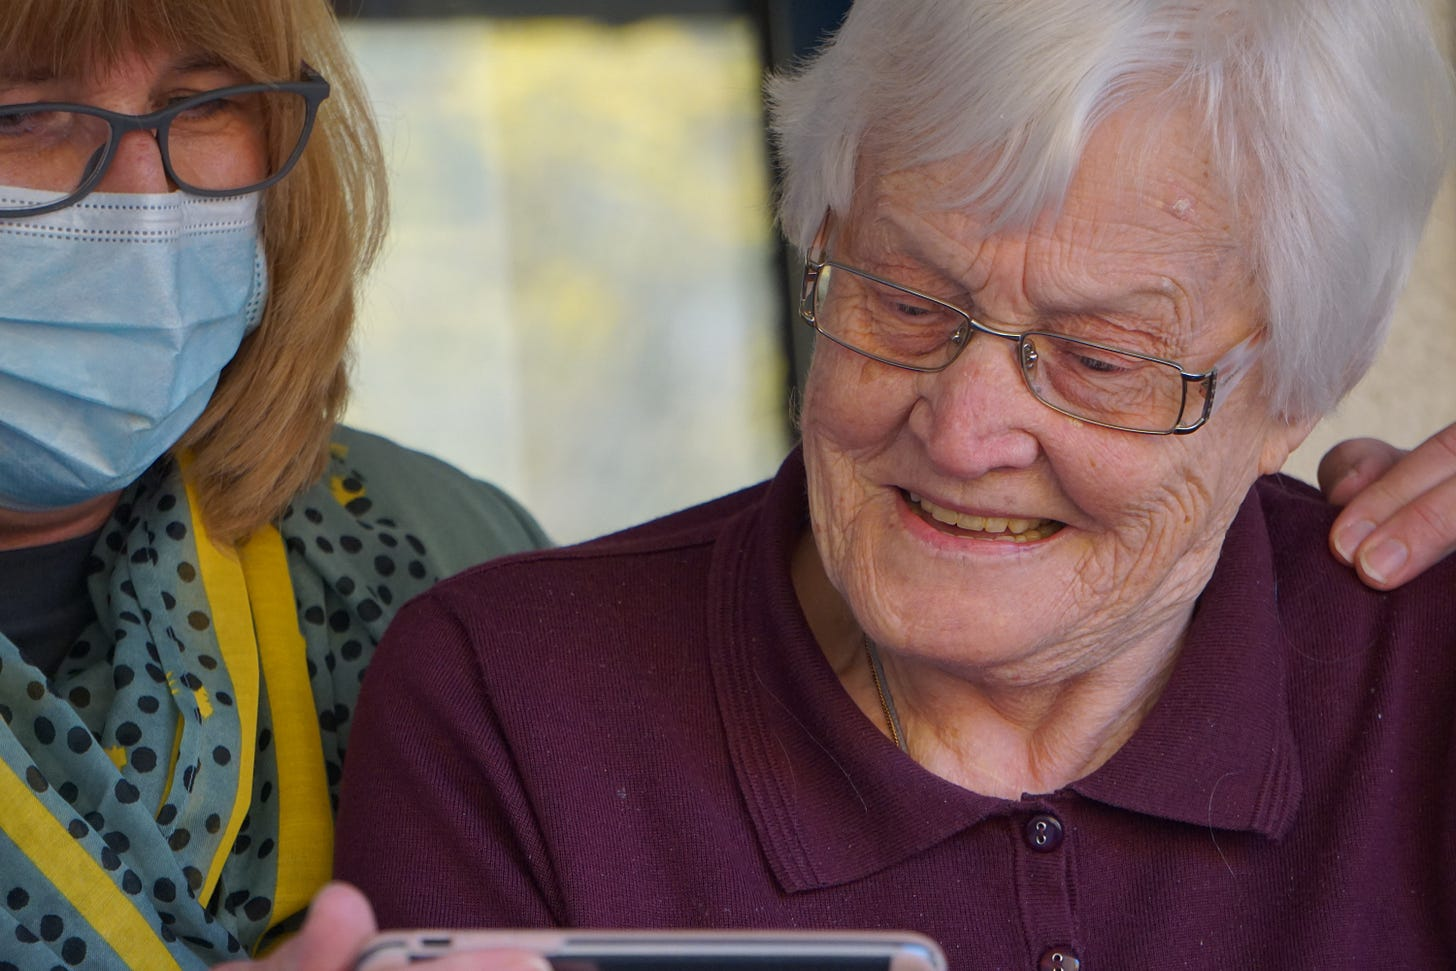 nurse with mask showing elderly woman an iphone